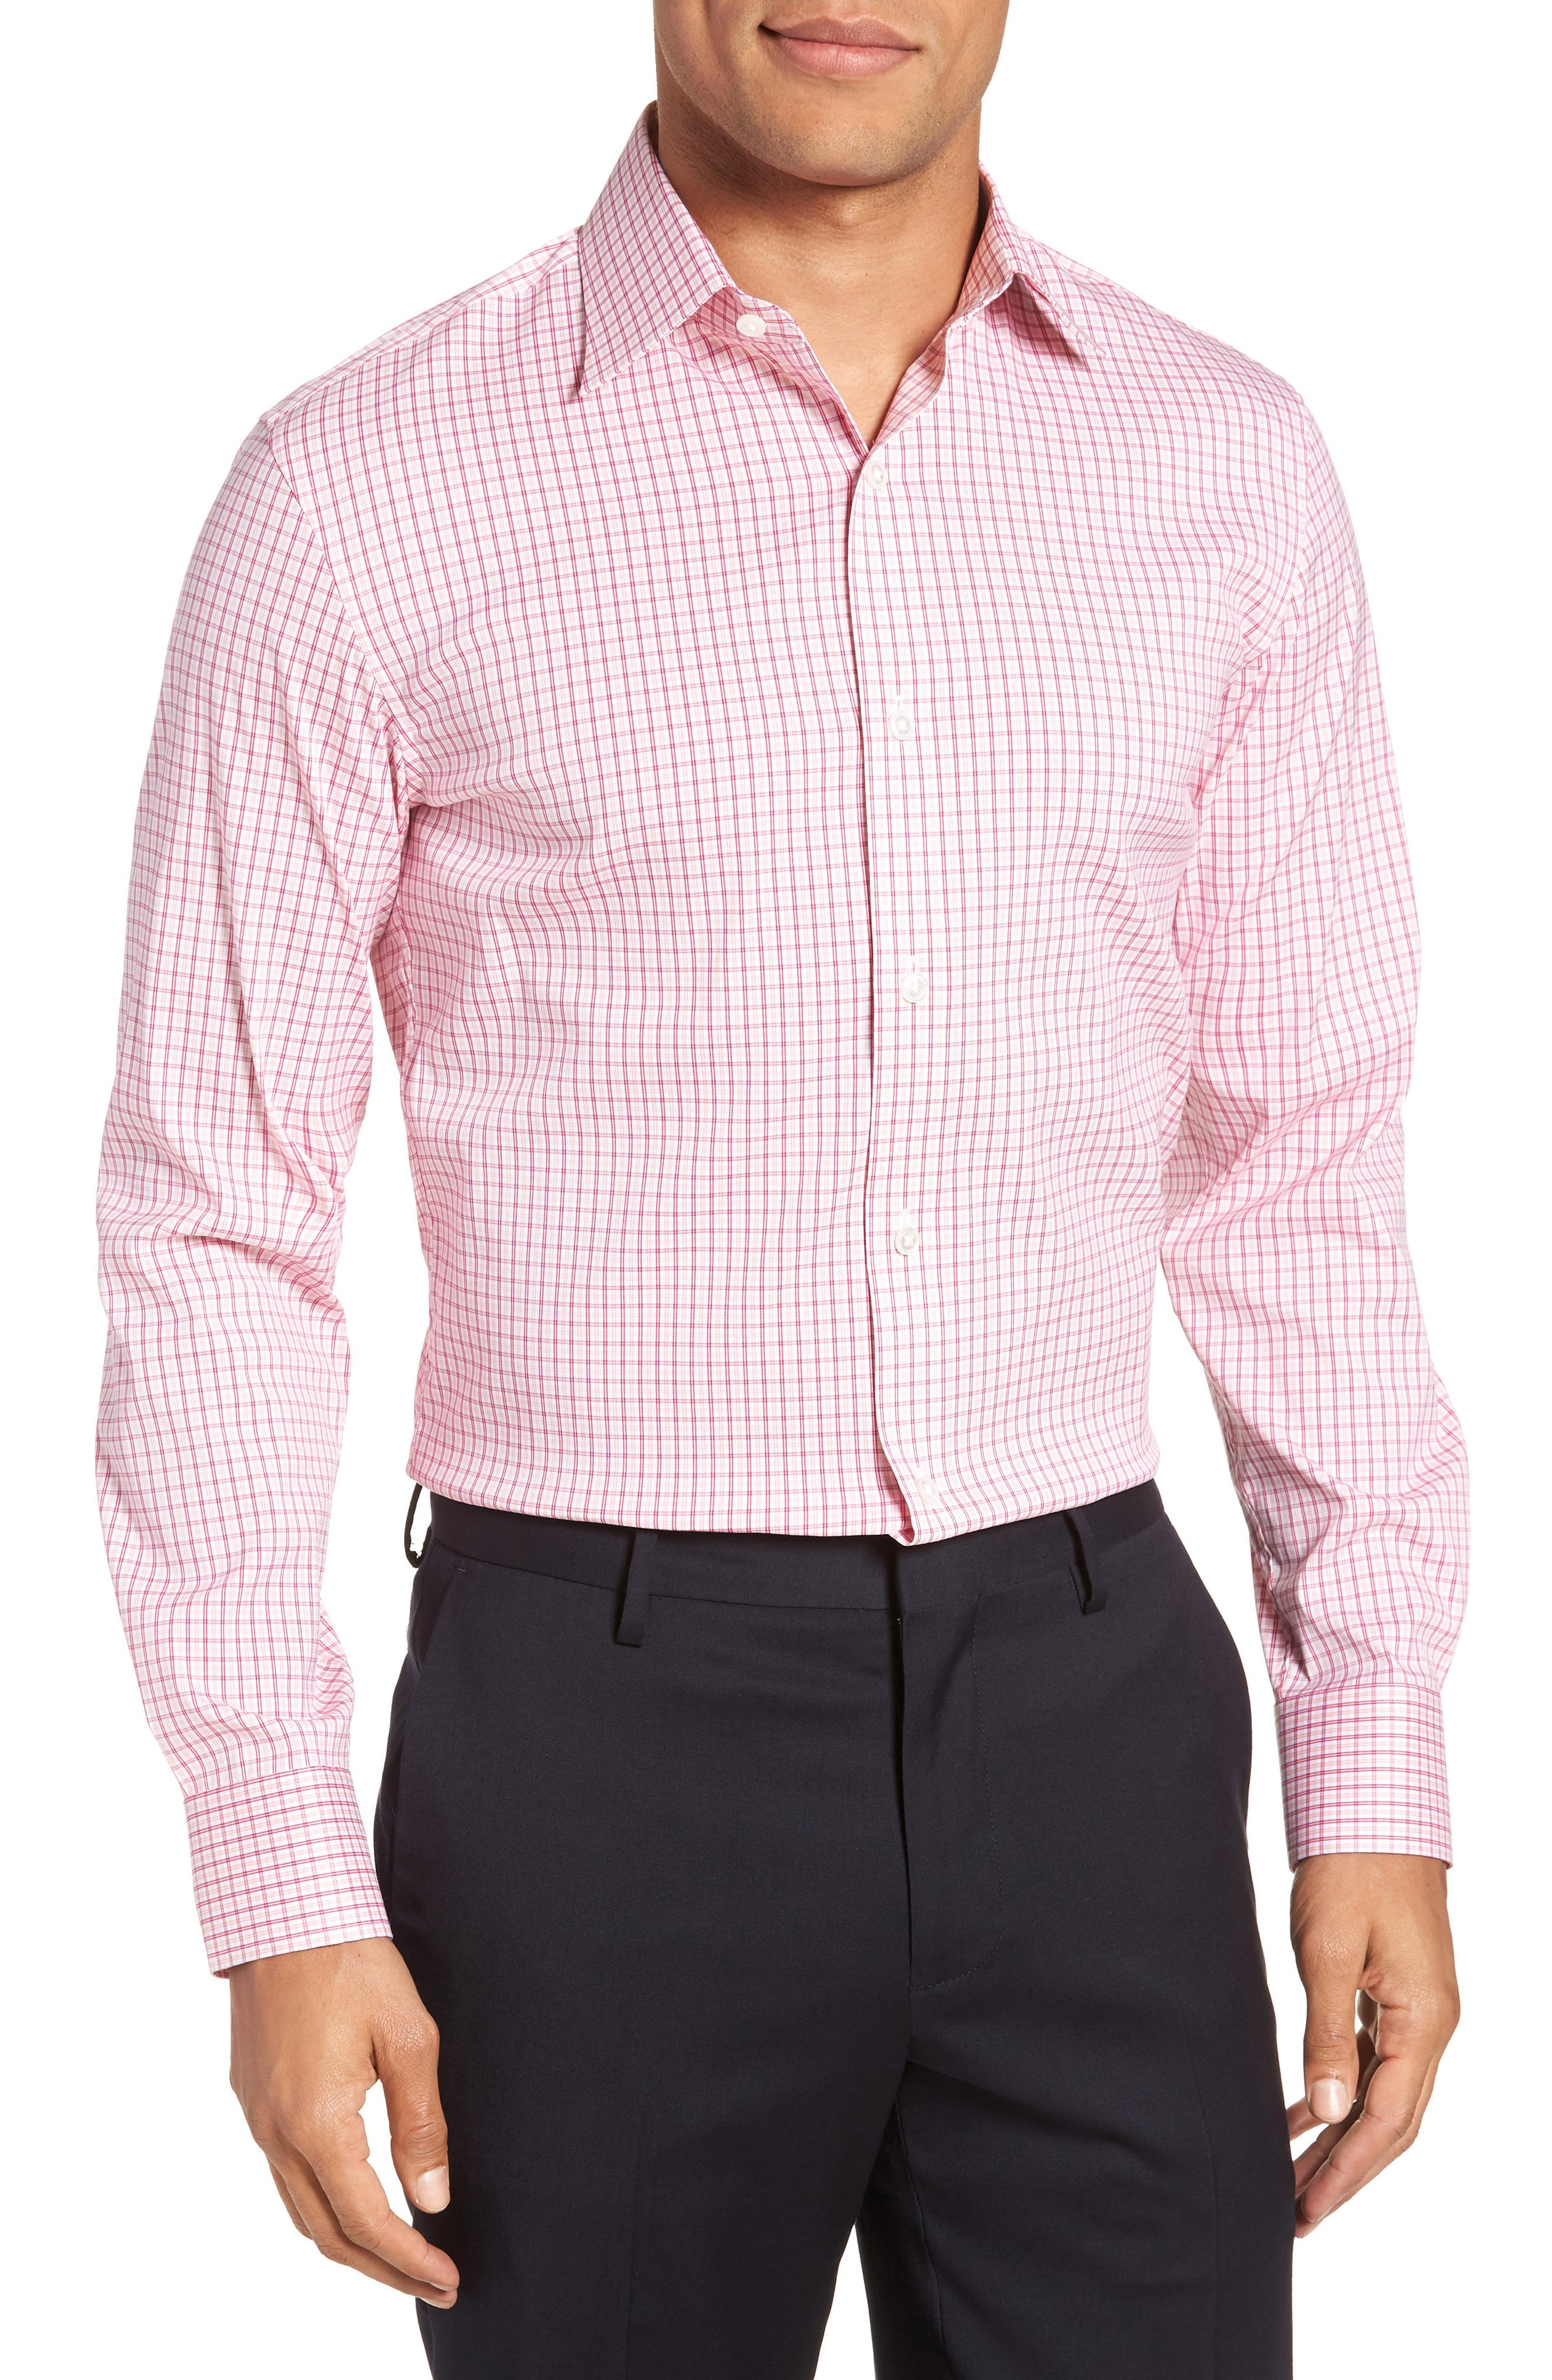 Jetsetter Slim Fit Stretch Check Dress Shirt,                             Main thumbnail 1, color,                             Pink Peacock